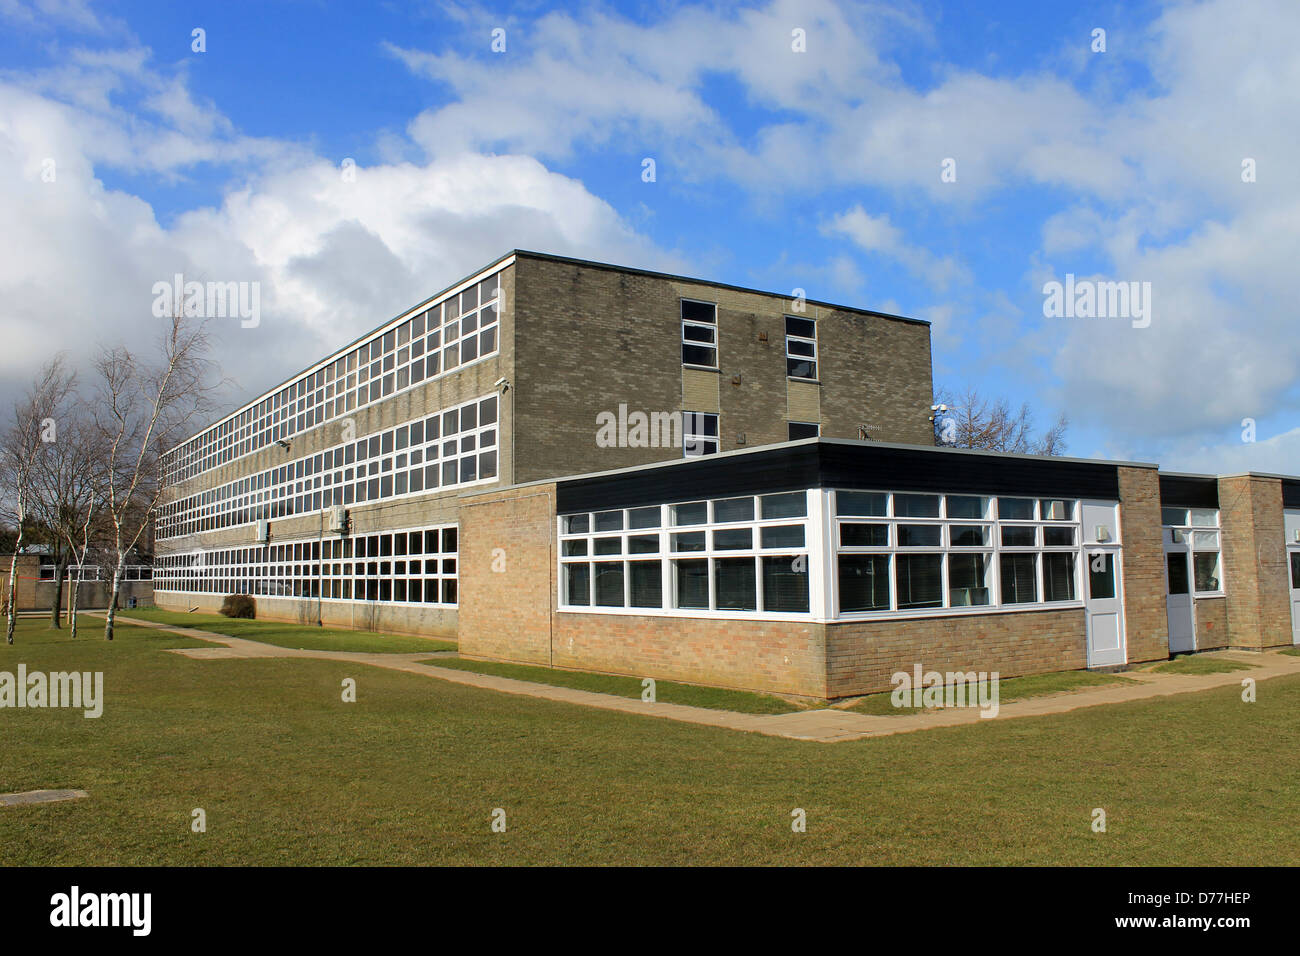 Exterior of English secondary school building, Scarborough. - Stock Image